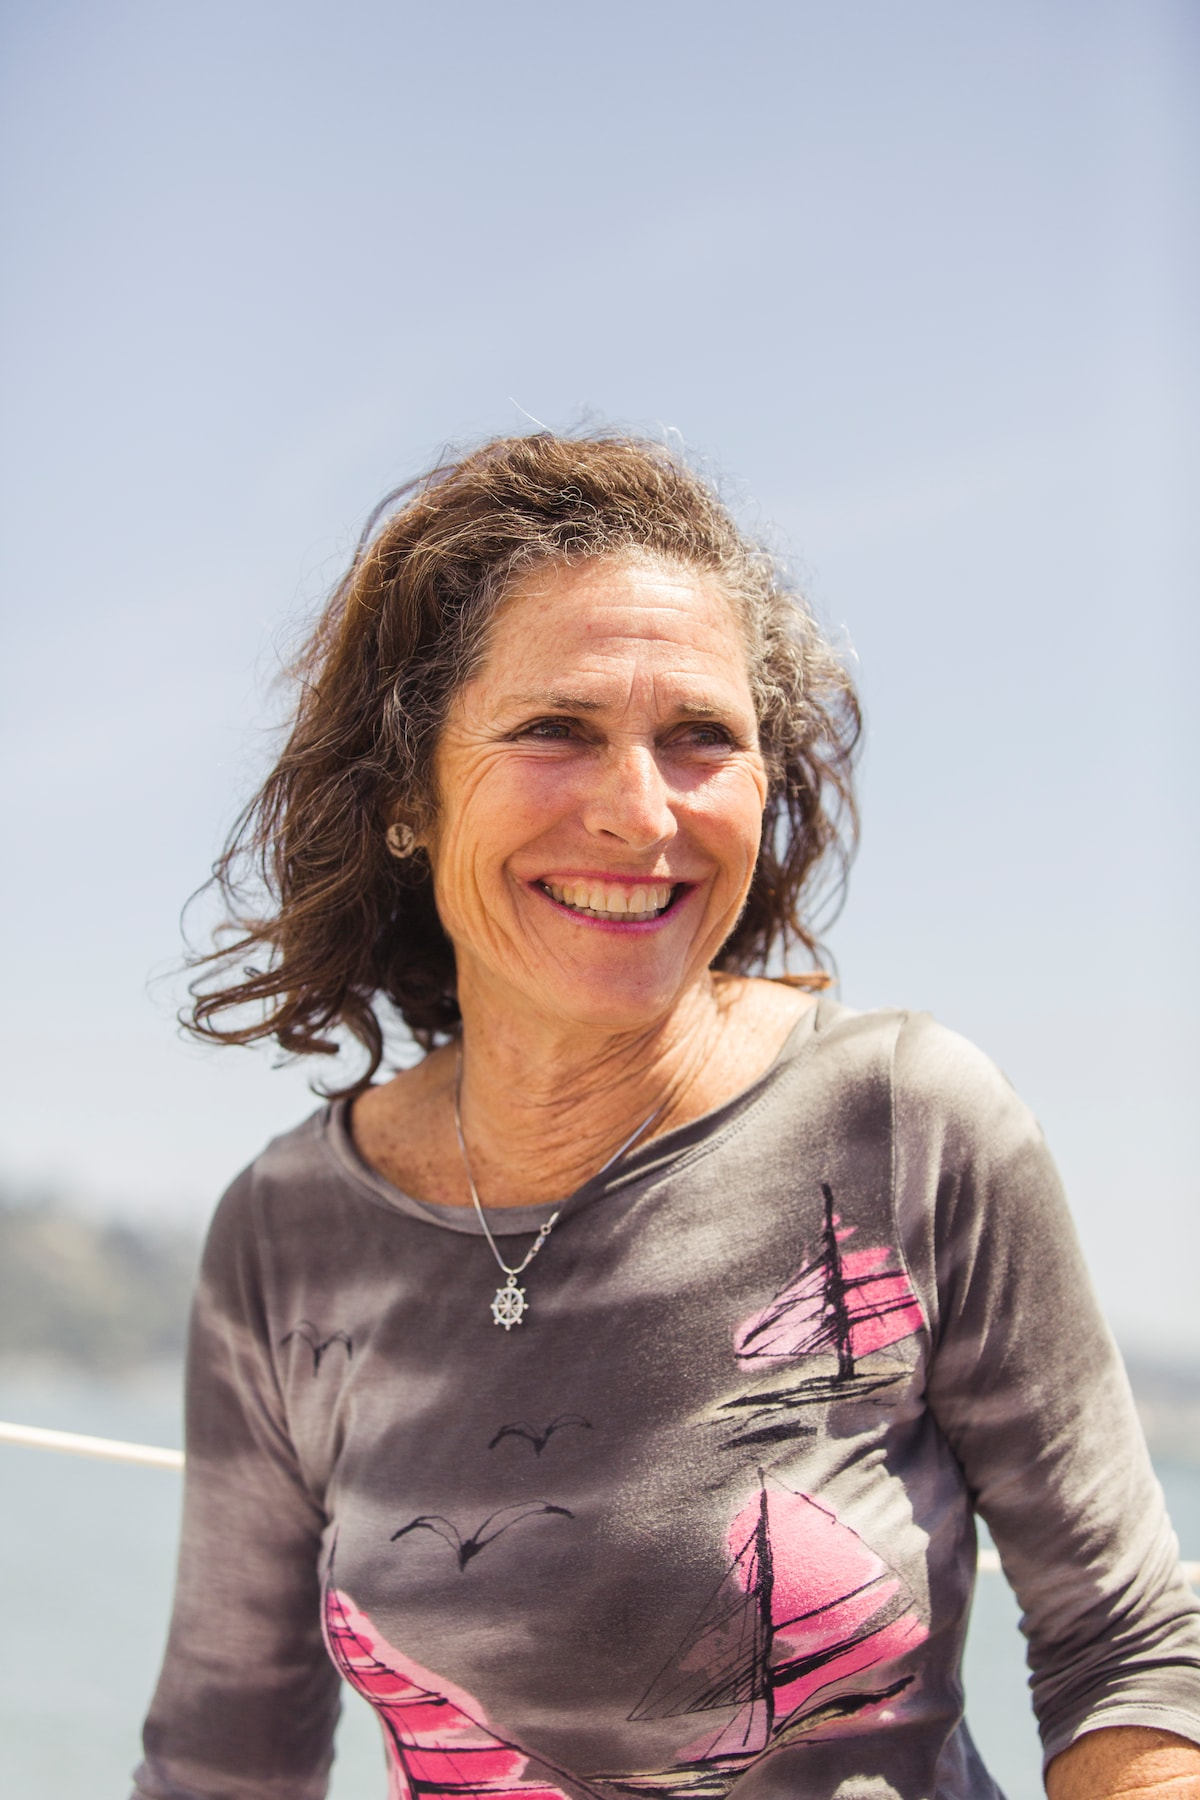 Dianne From Sausalito, CA